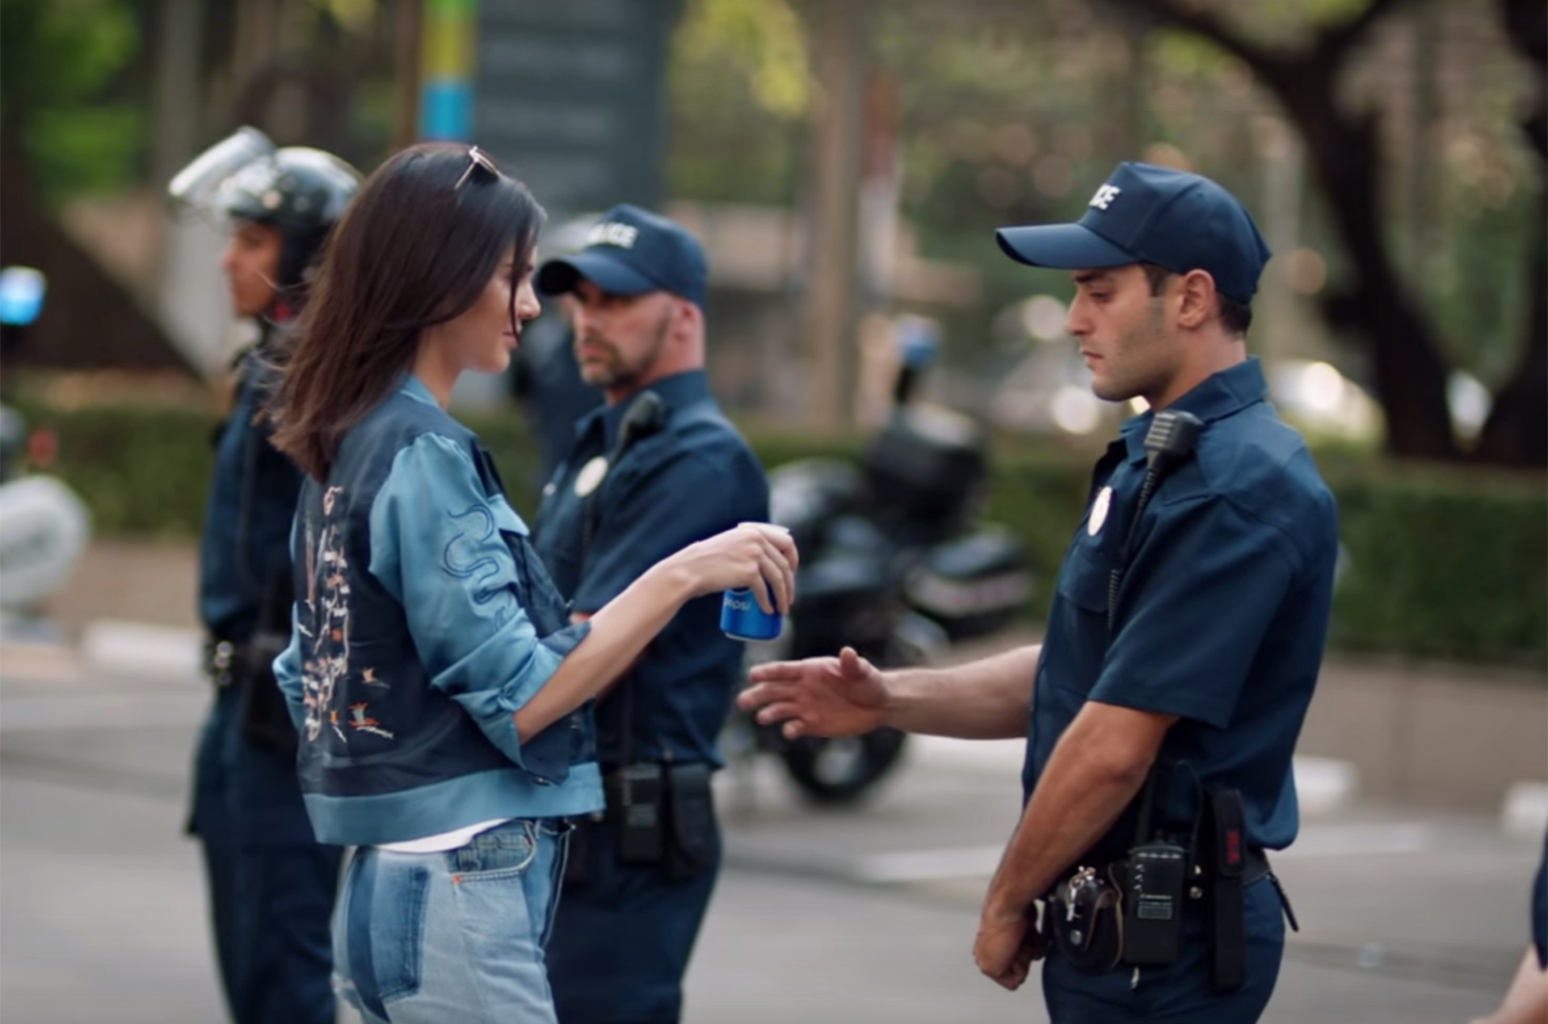 Pepsi Commercial Ft. Kendall Jenner (2017) - Link to Full Advertisement: https://youtu.be/PJ3eMnU4G1M